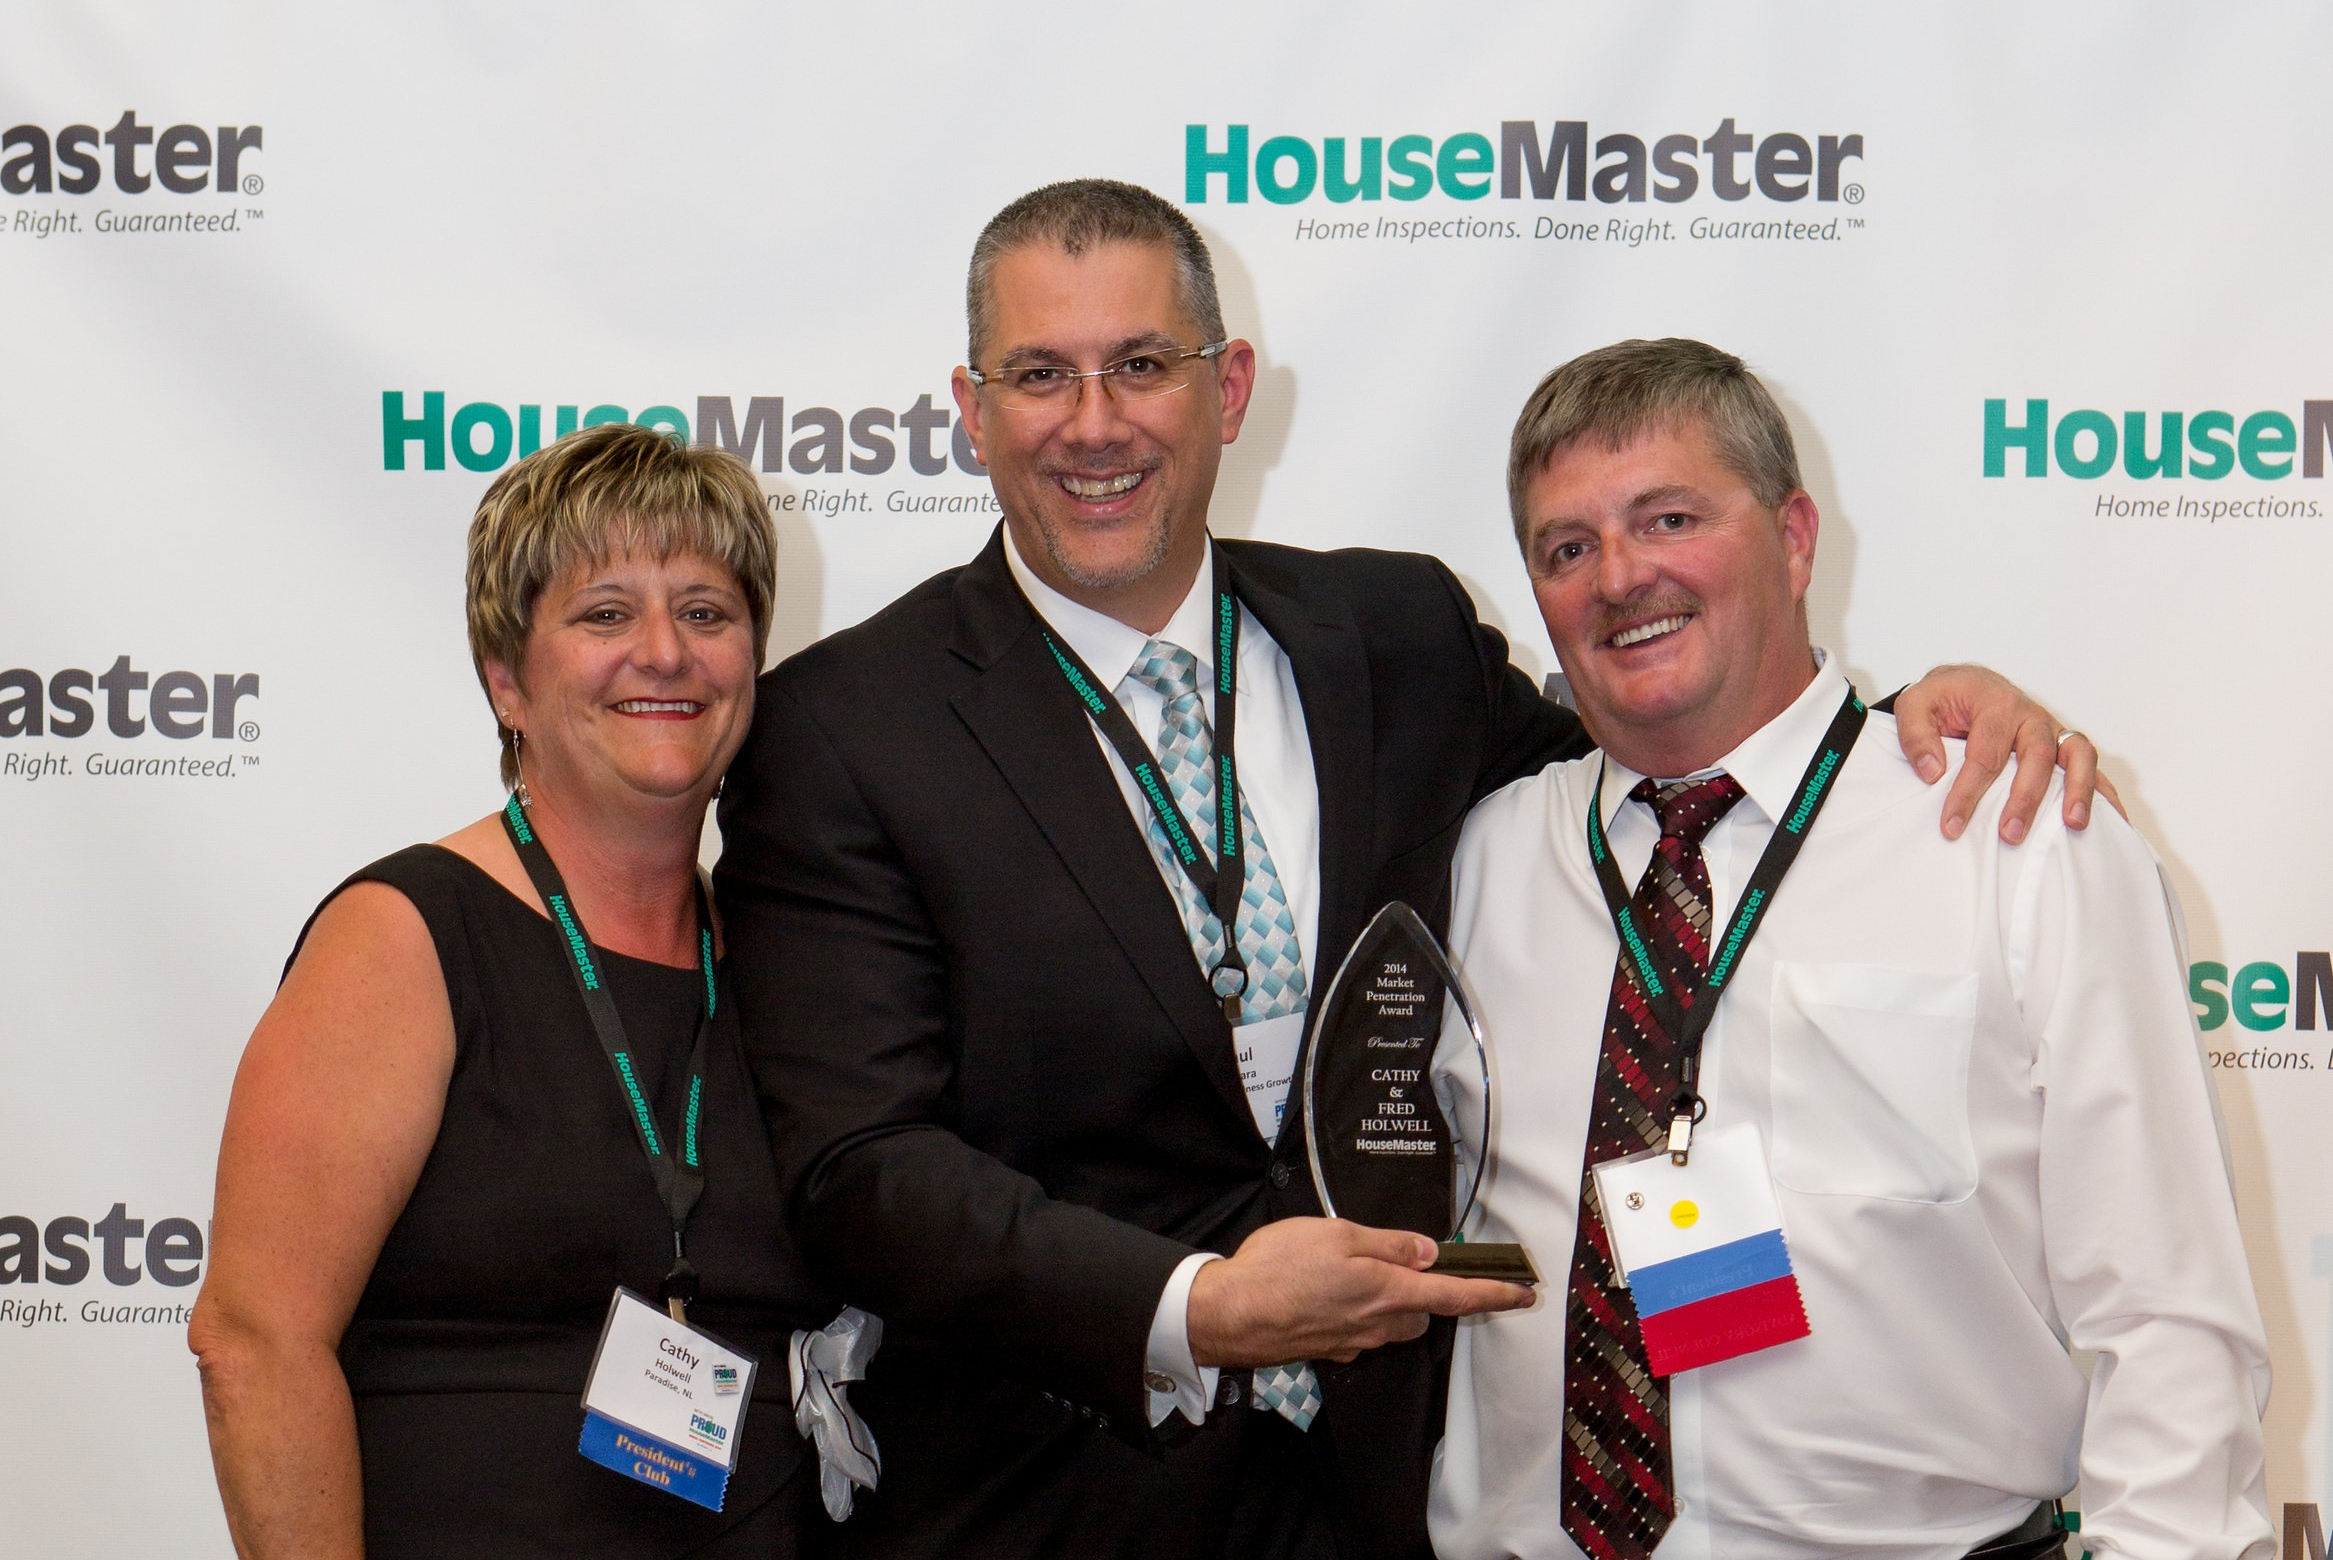 HouseMaster's Fred and Kathy Holwell Honored with Market Award